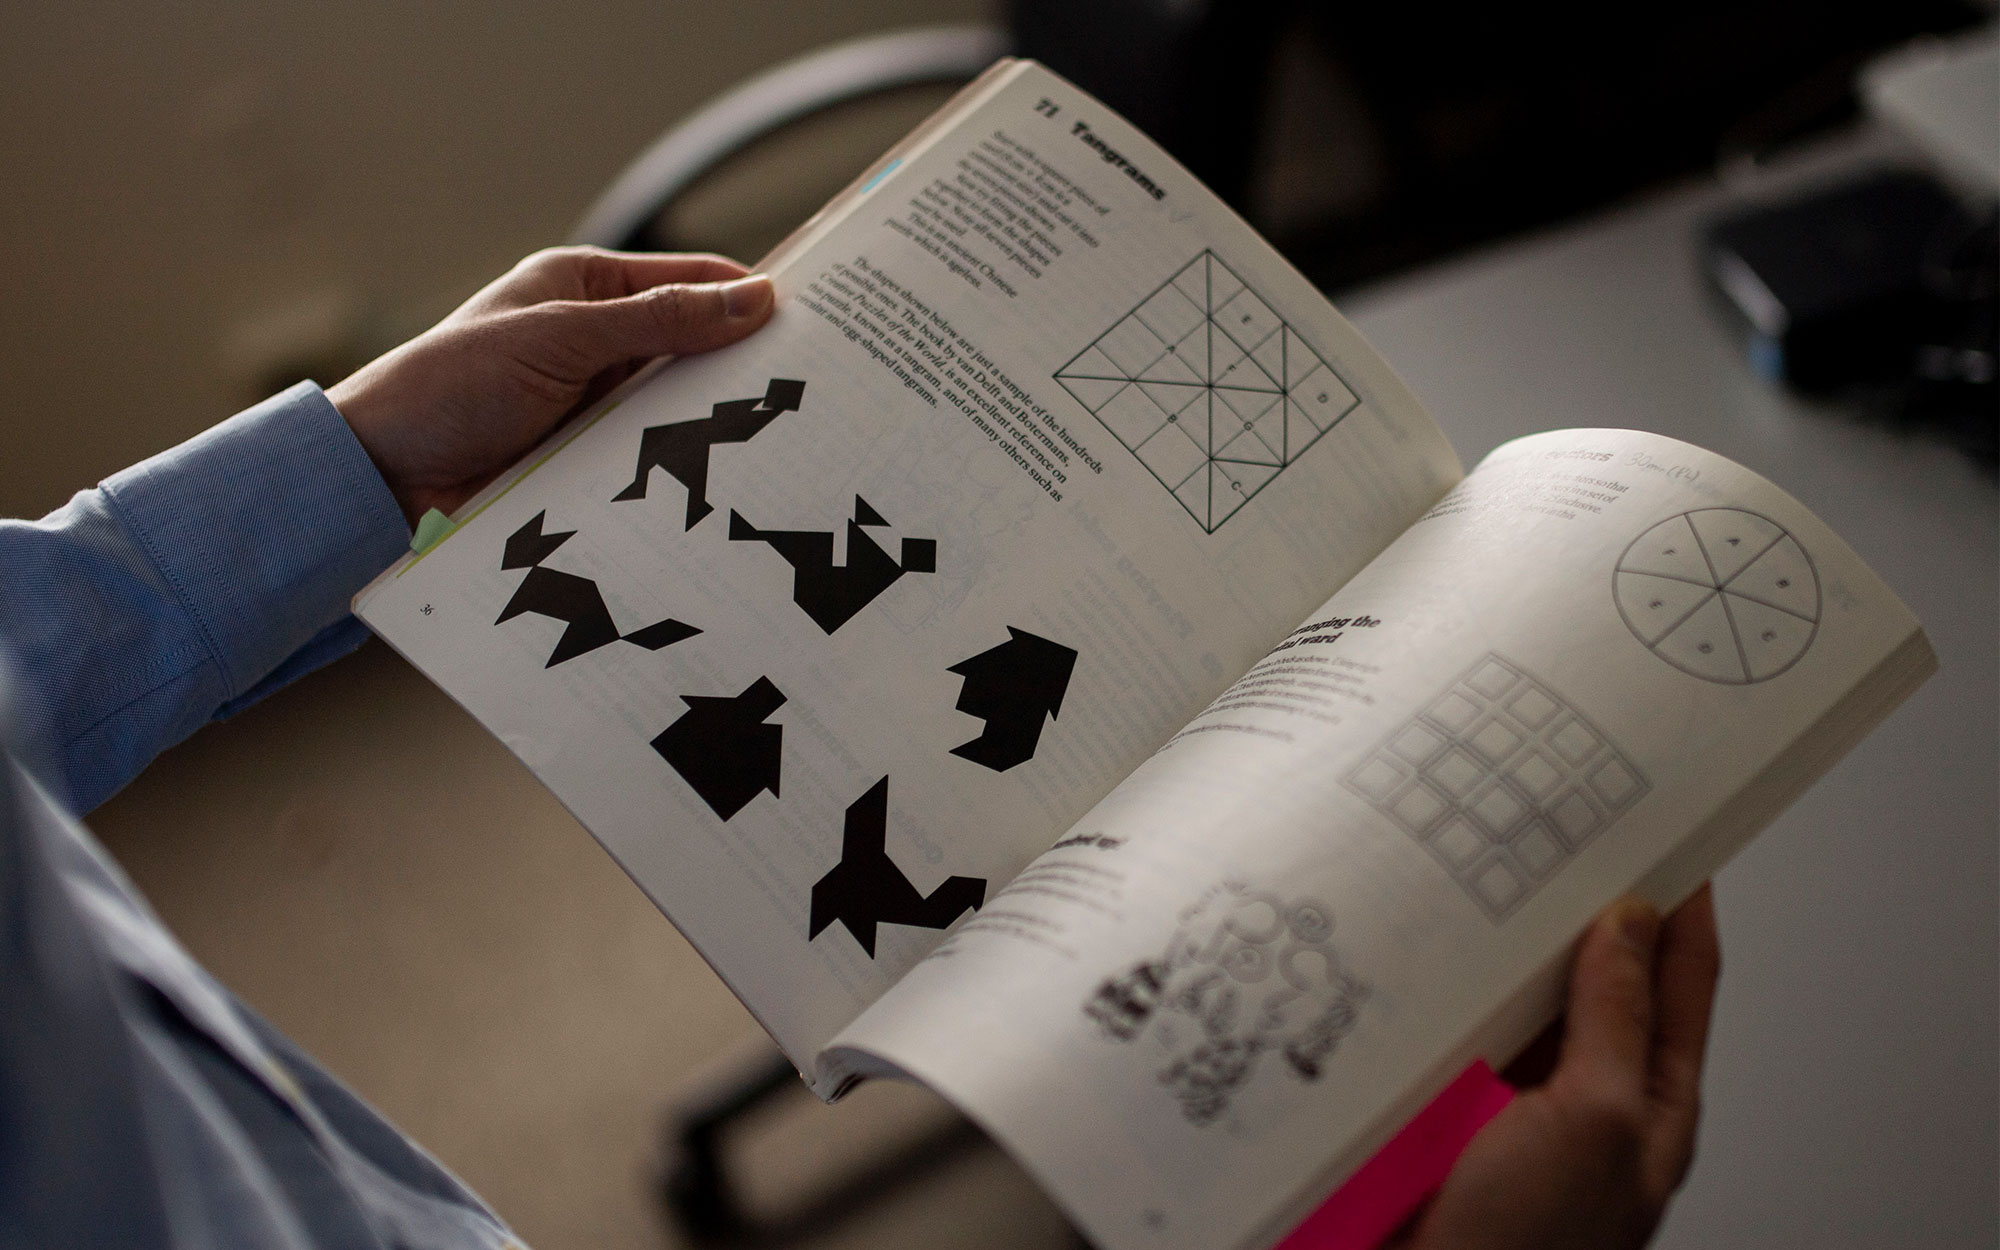 On the left, a close-up of Po-Shen Loh's hands holding open a book of math puzzles. On the right, the front cover of the book.